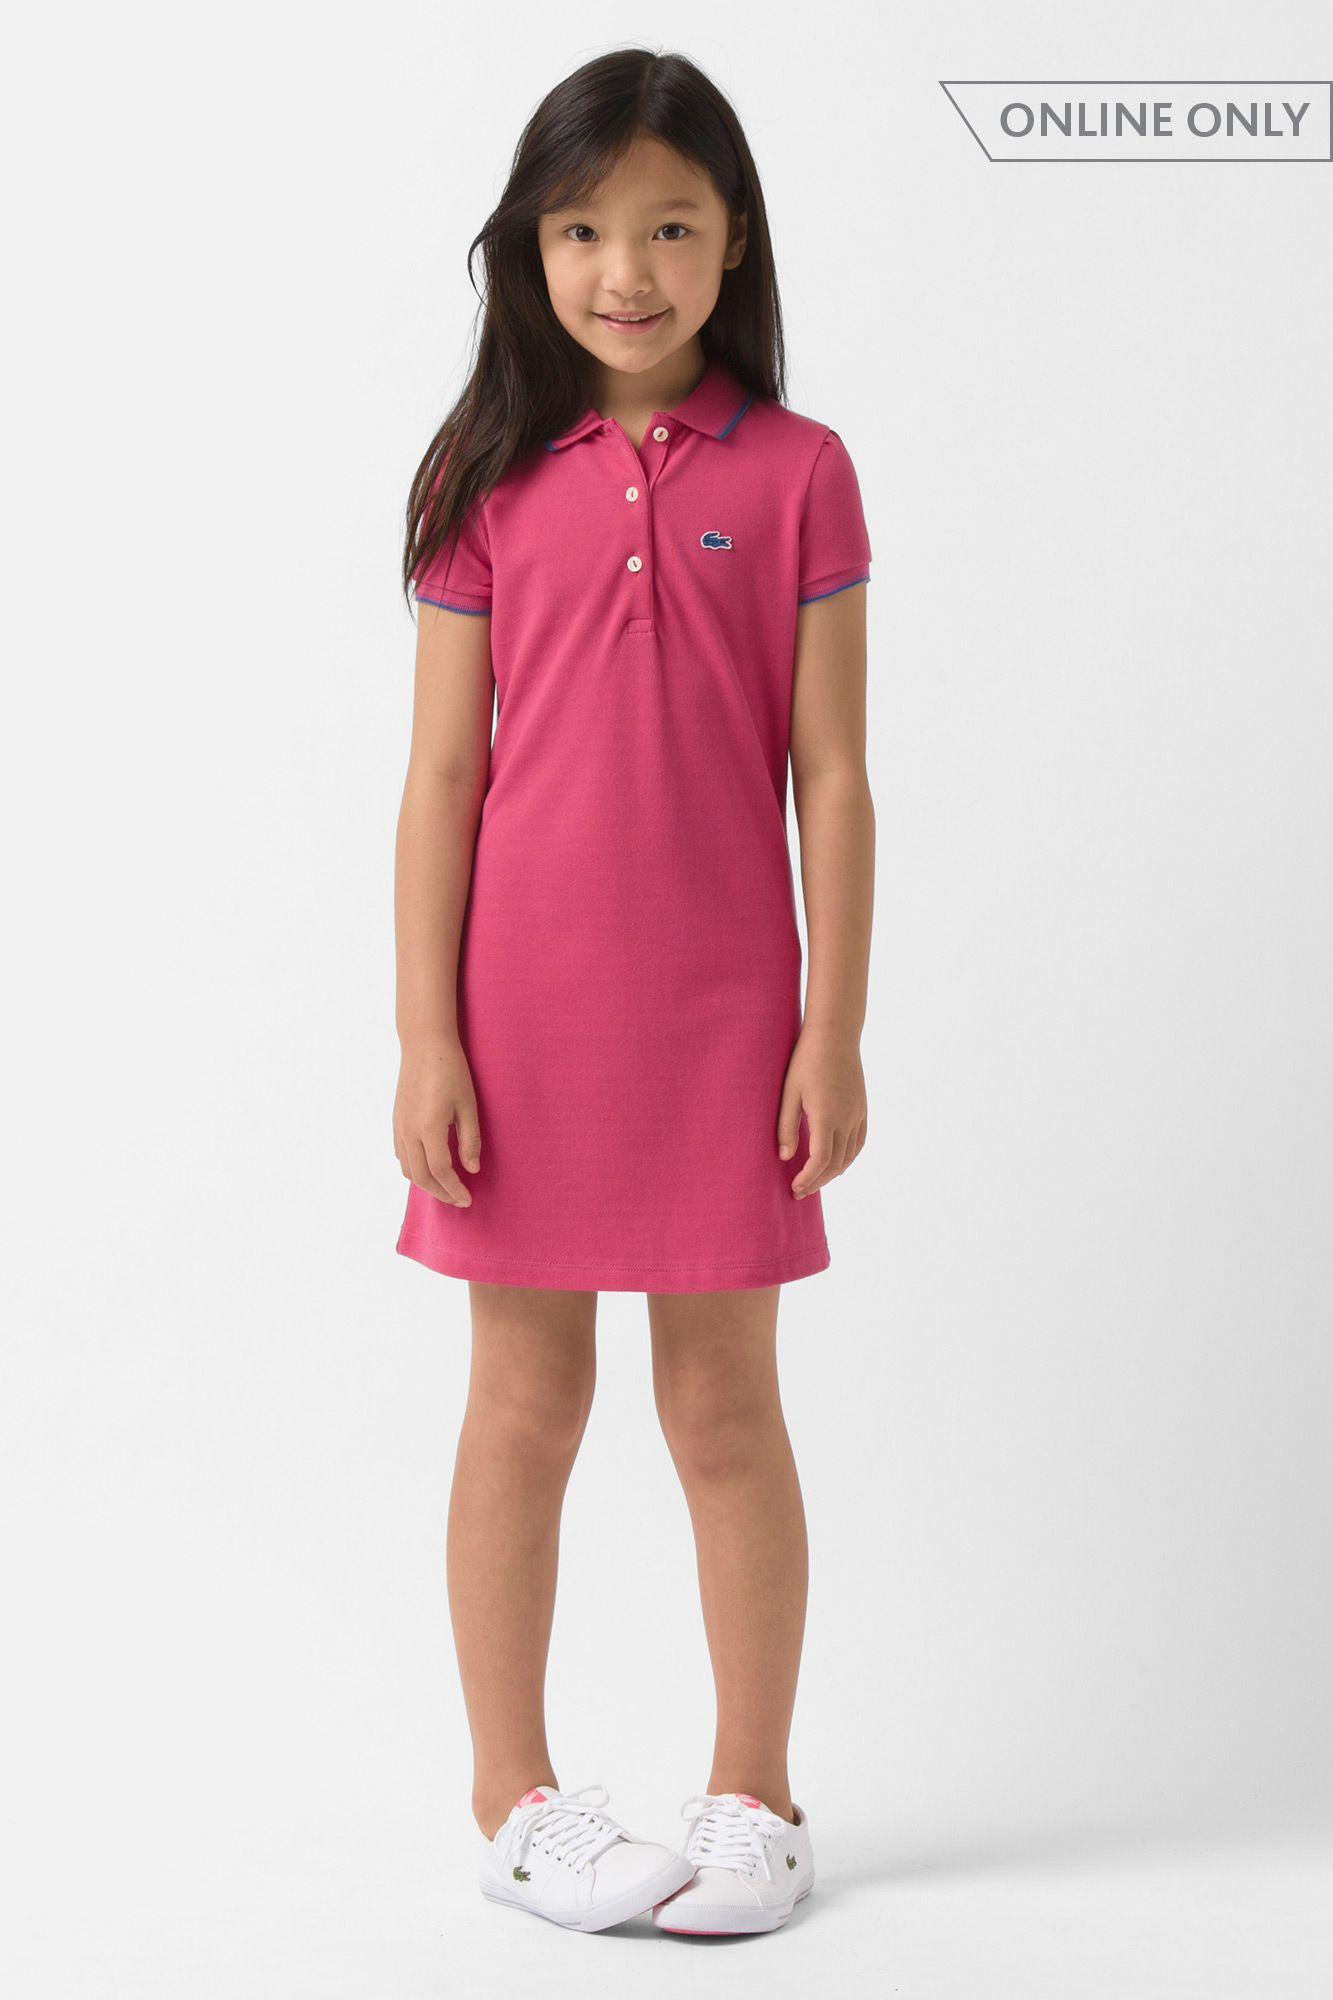 955d03301bc2f Lacoste Girl s Short Sleeve Pique Polo Dress with Tipping and Neon Croc    Dresses